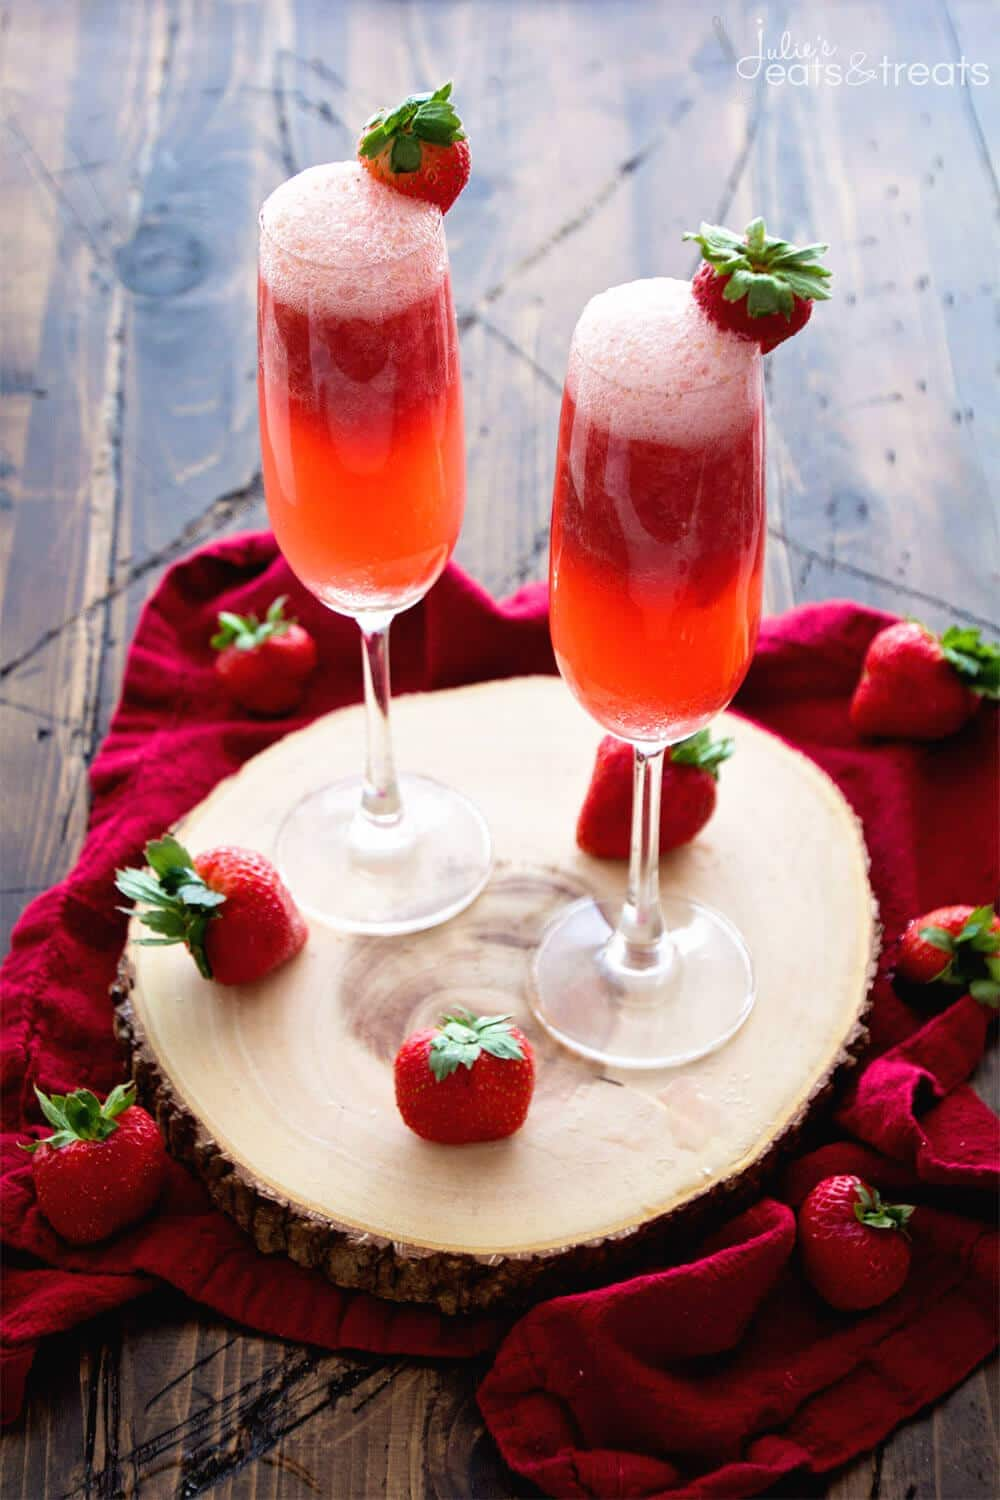 Strawberry Bellini Recipe ~ Delicious, Easy Bellini Recipe Perfect for Celebrating! Fresh Strawberries, Brandy and Sparkling Moscato Make this a Festive Drink!